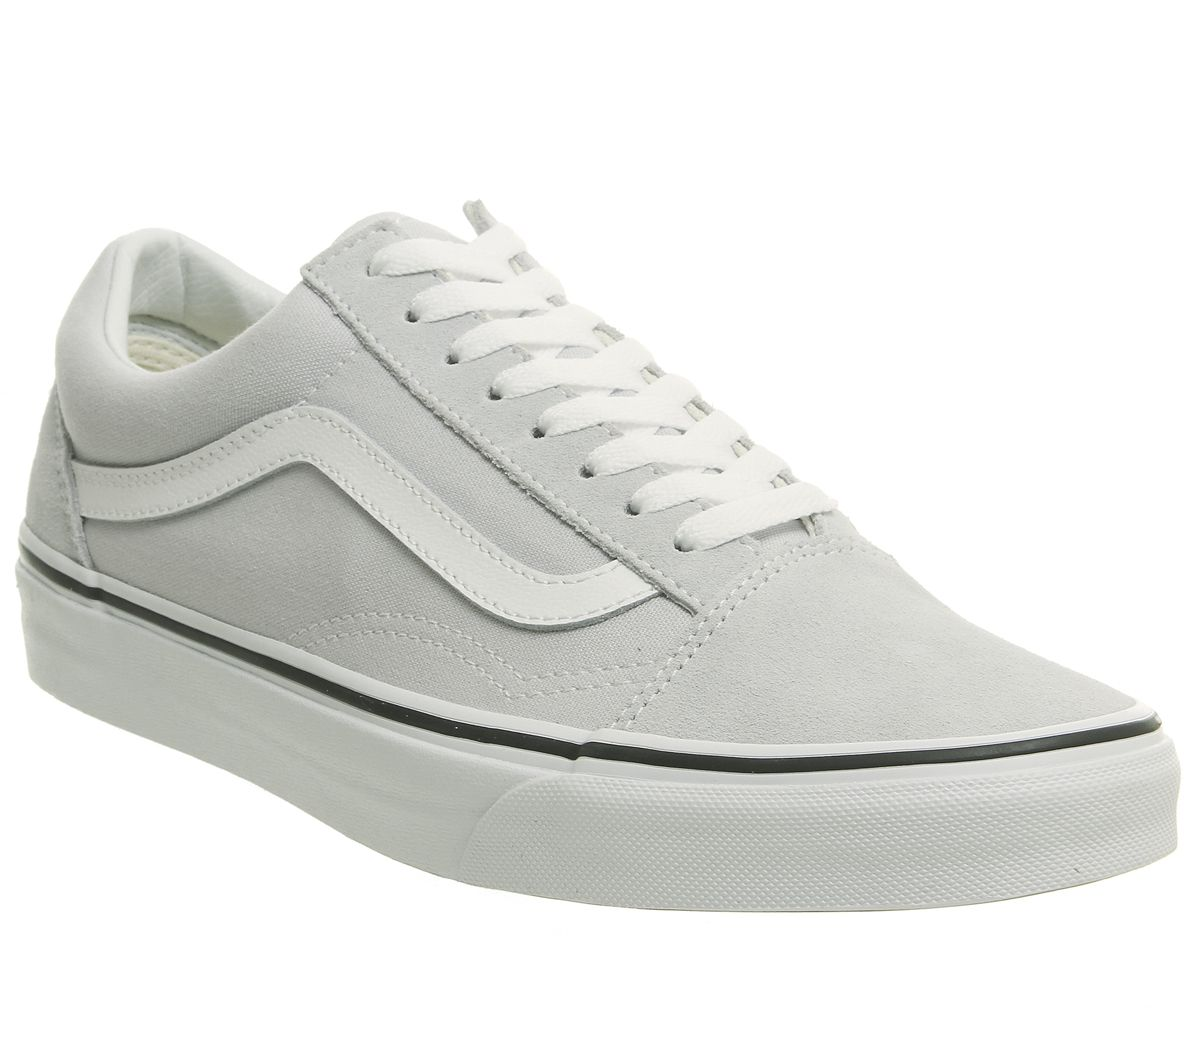 d6c9e10f60be3 Vans Old Skool Trainers Gray Dawn True White - Unisex Sports